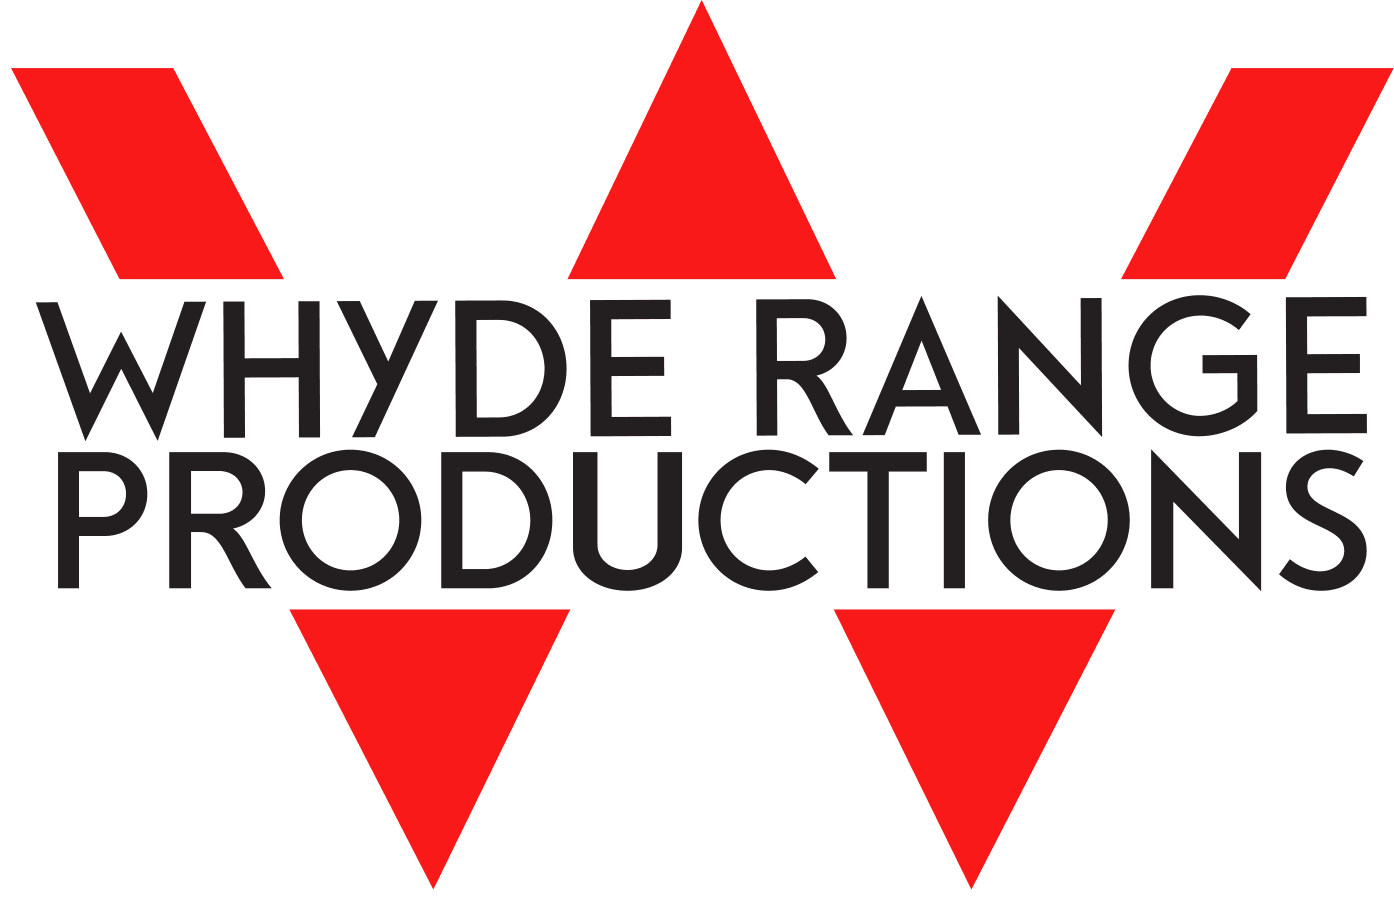 Whyde Range Productions